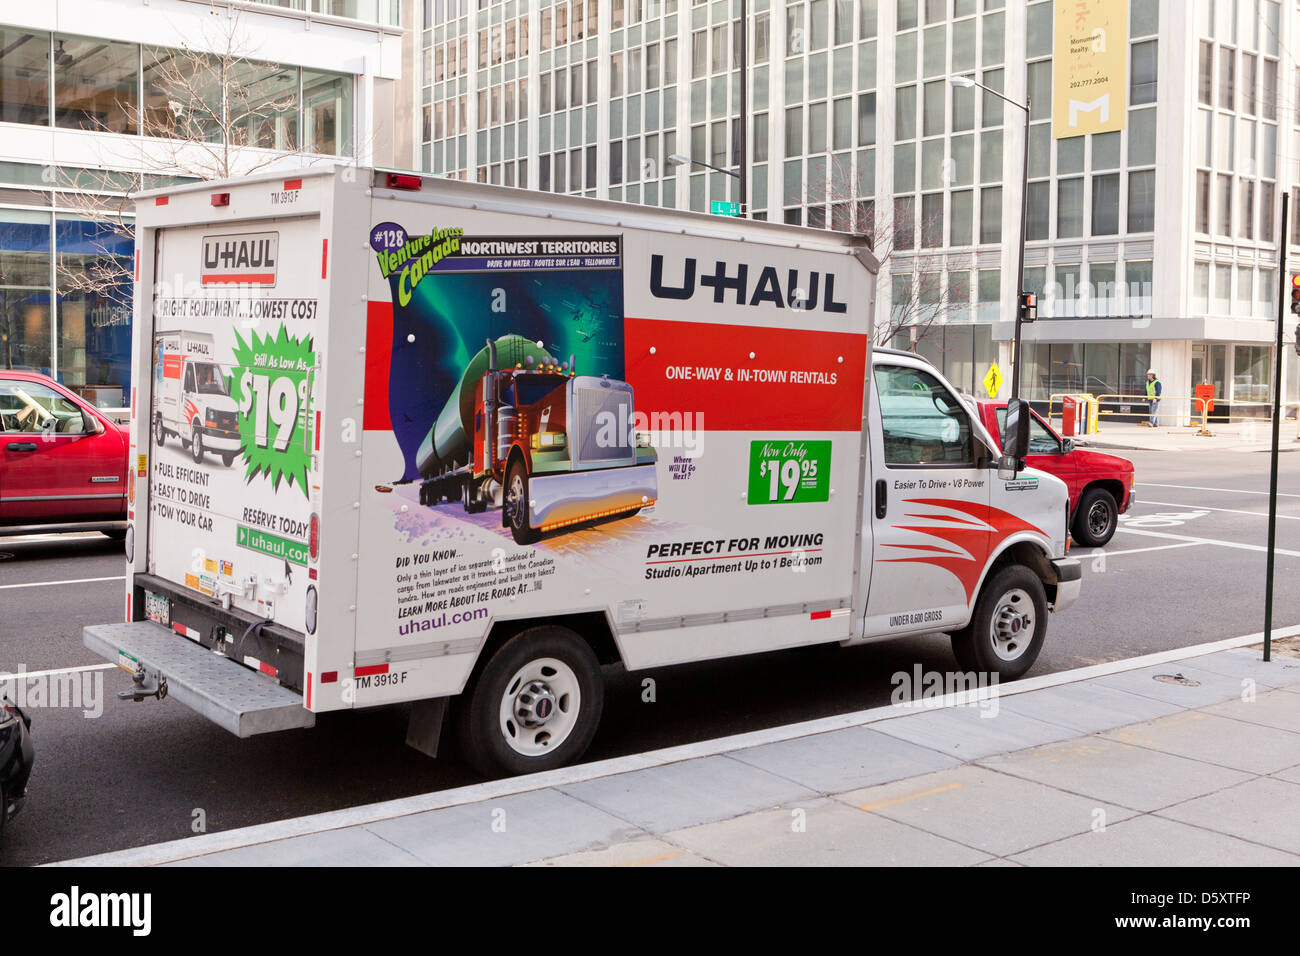 U-Haul truck in urban street - USA - Stock Image